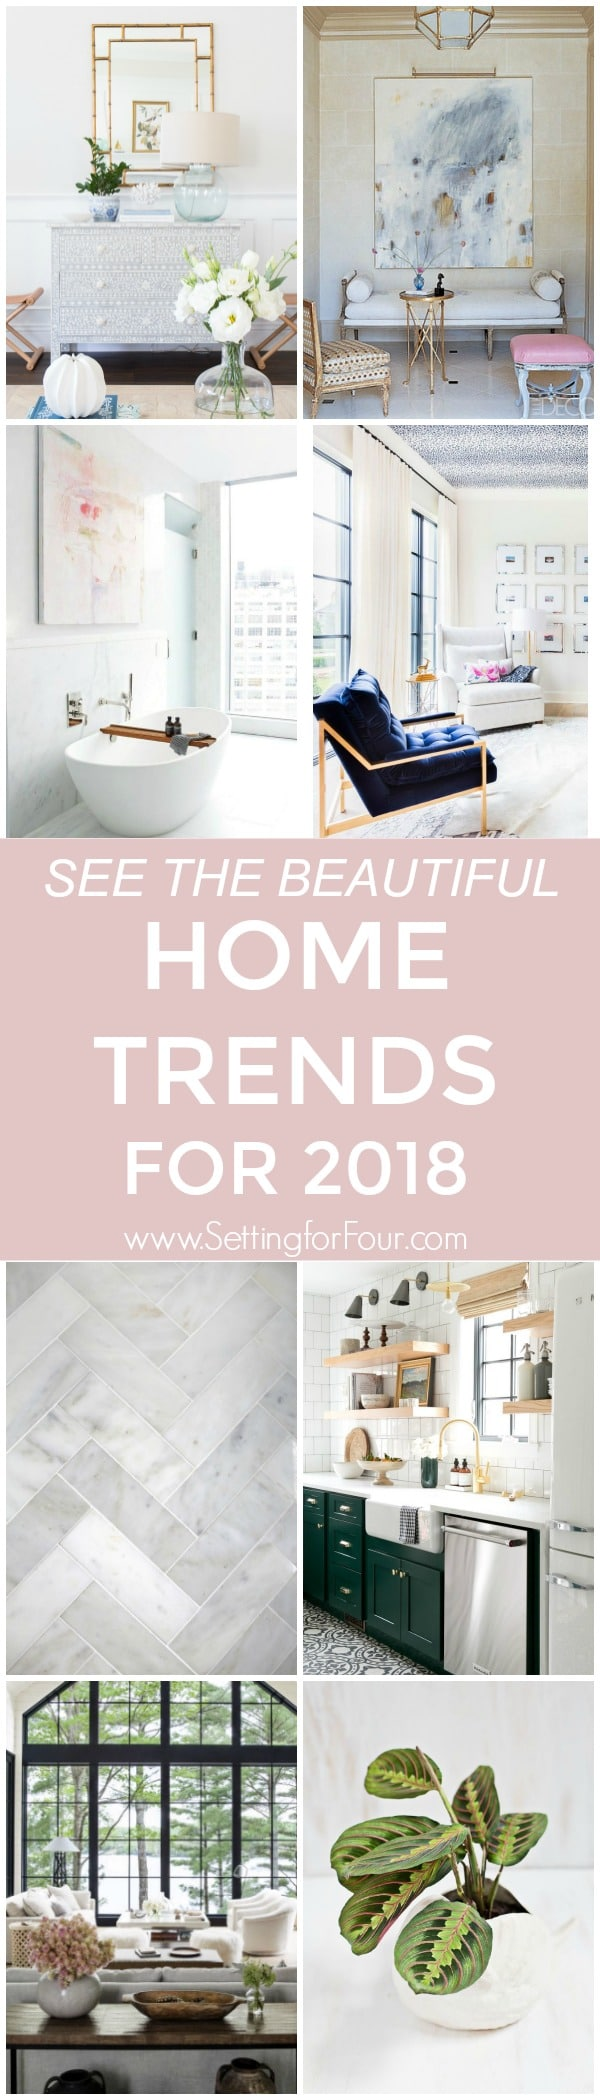 Home trends for 2018 in design and decor setting for four for Home interior products